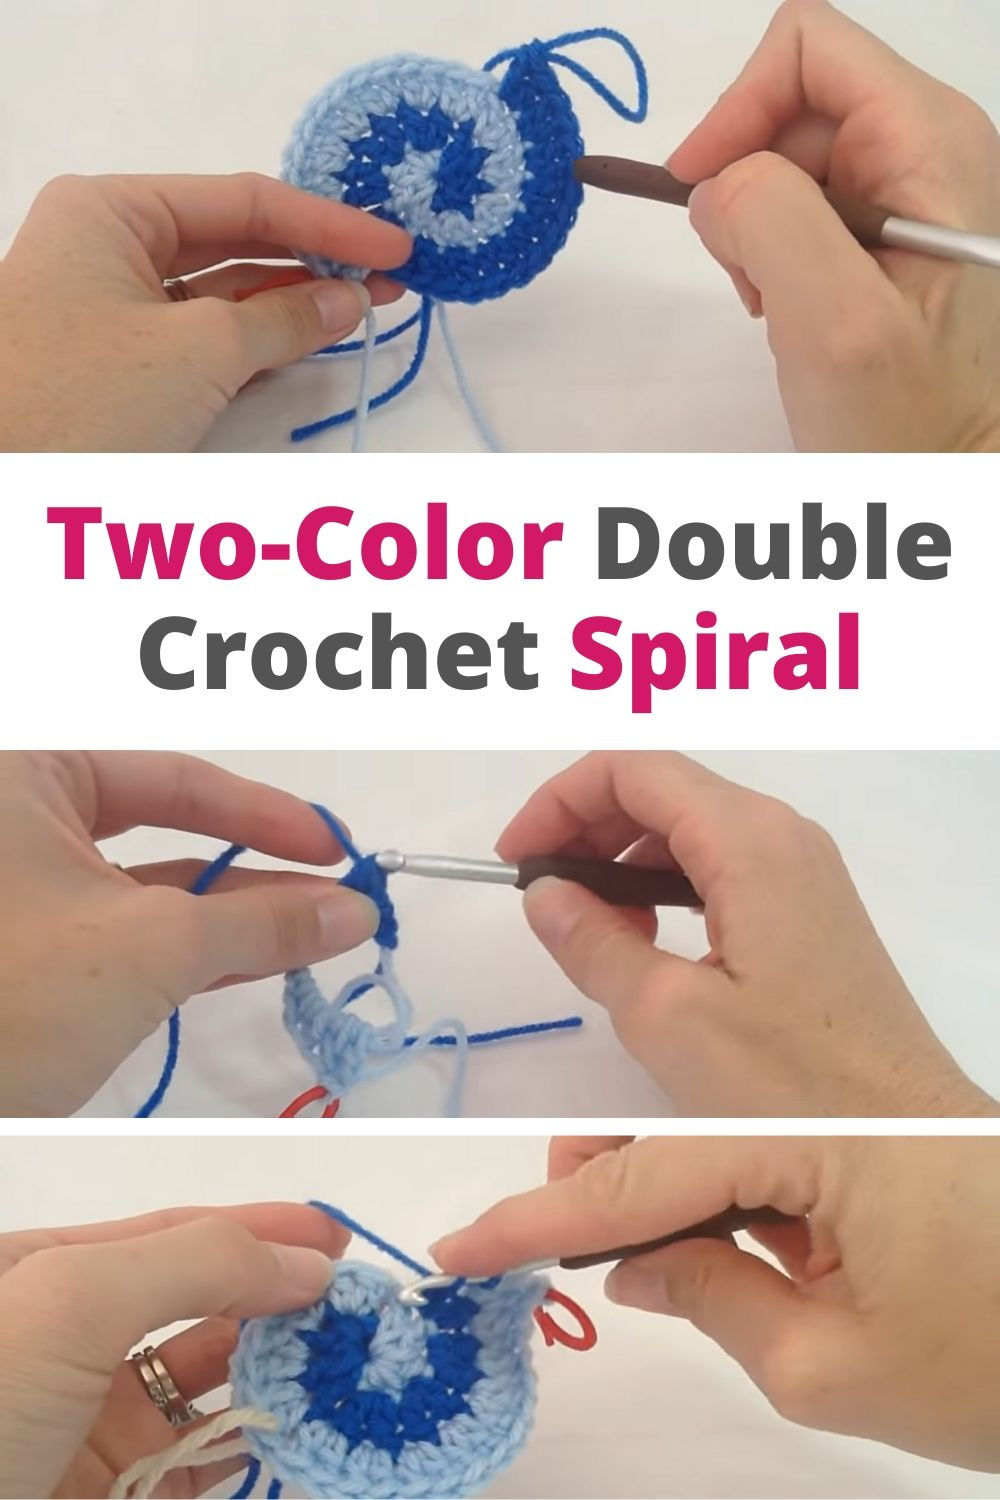 Two-Color Double Crochet Spiral